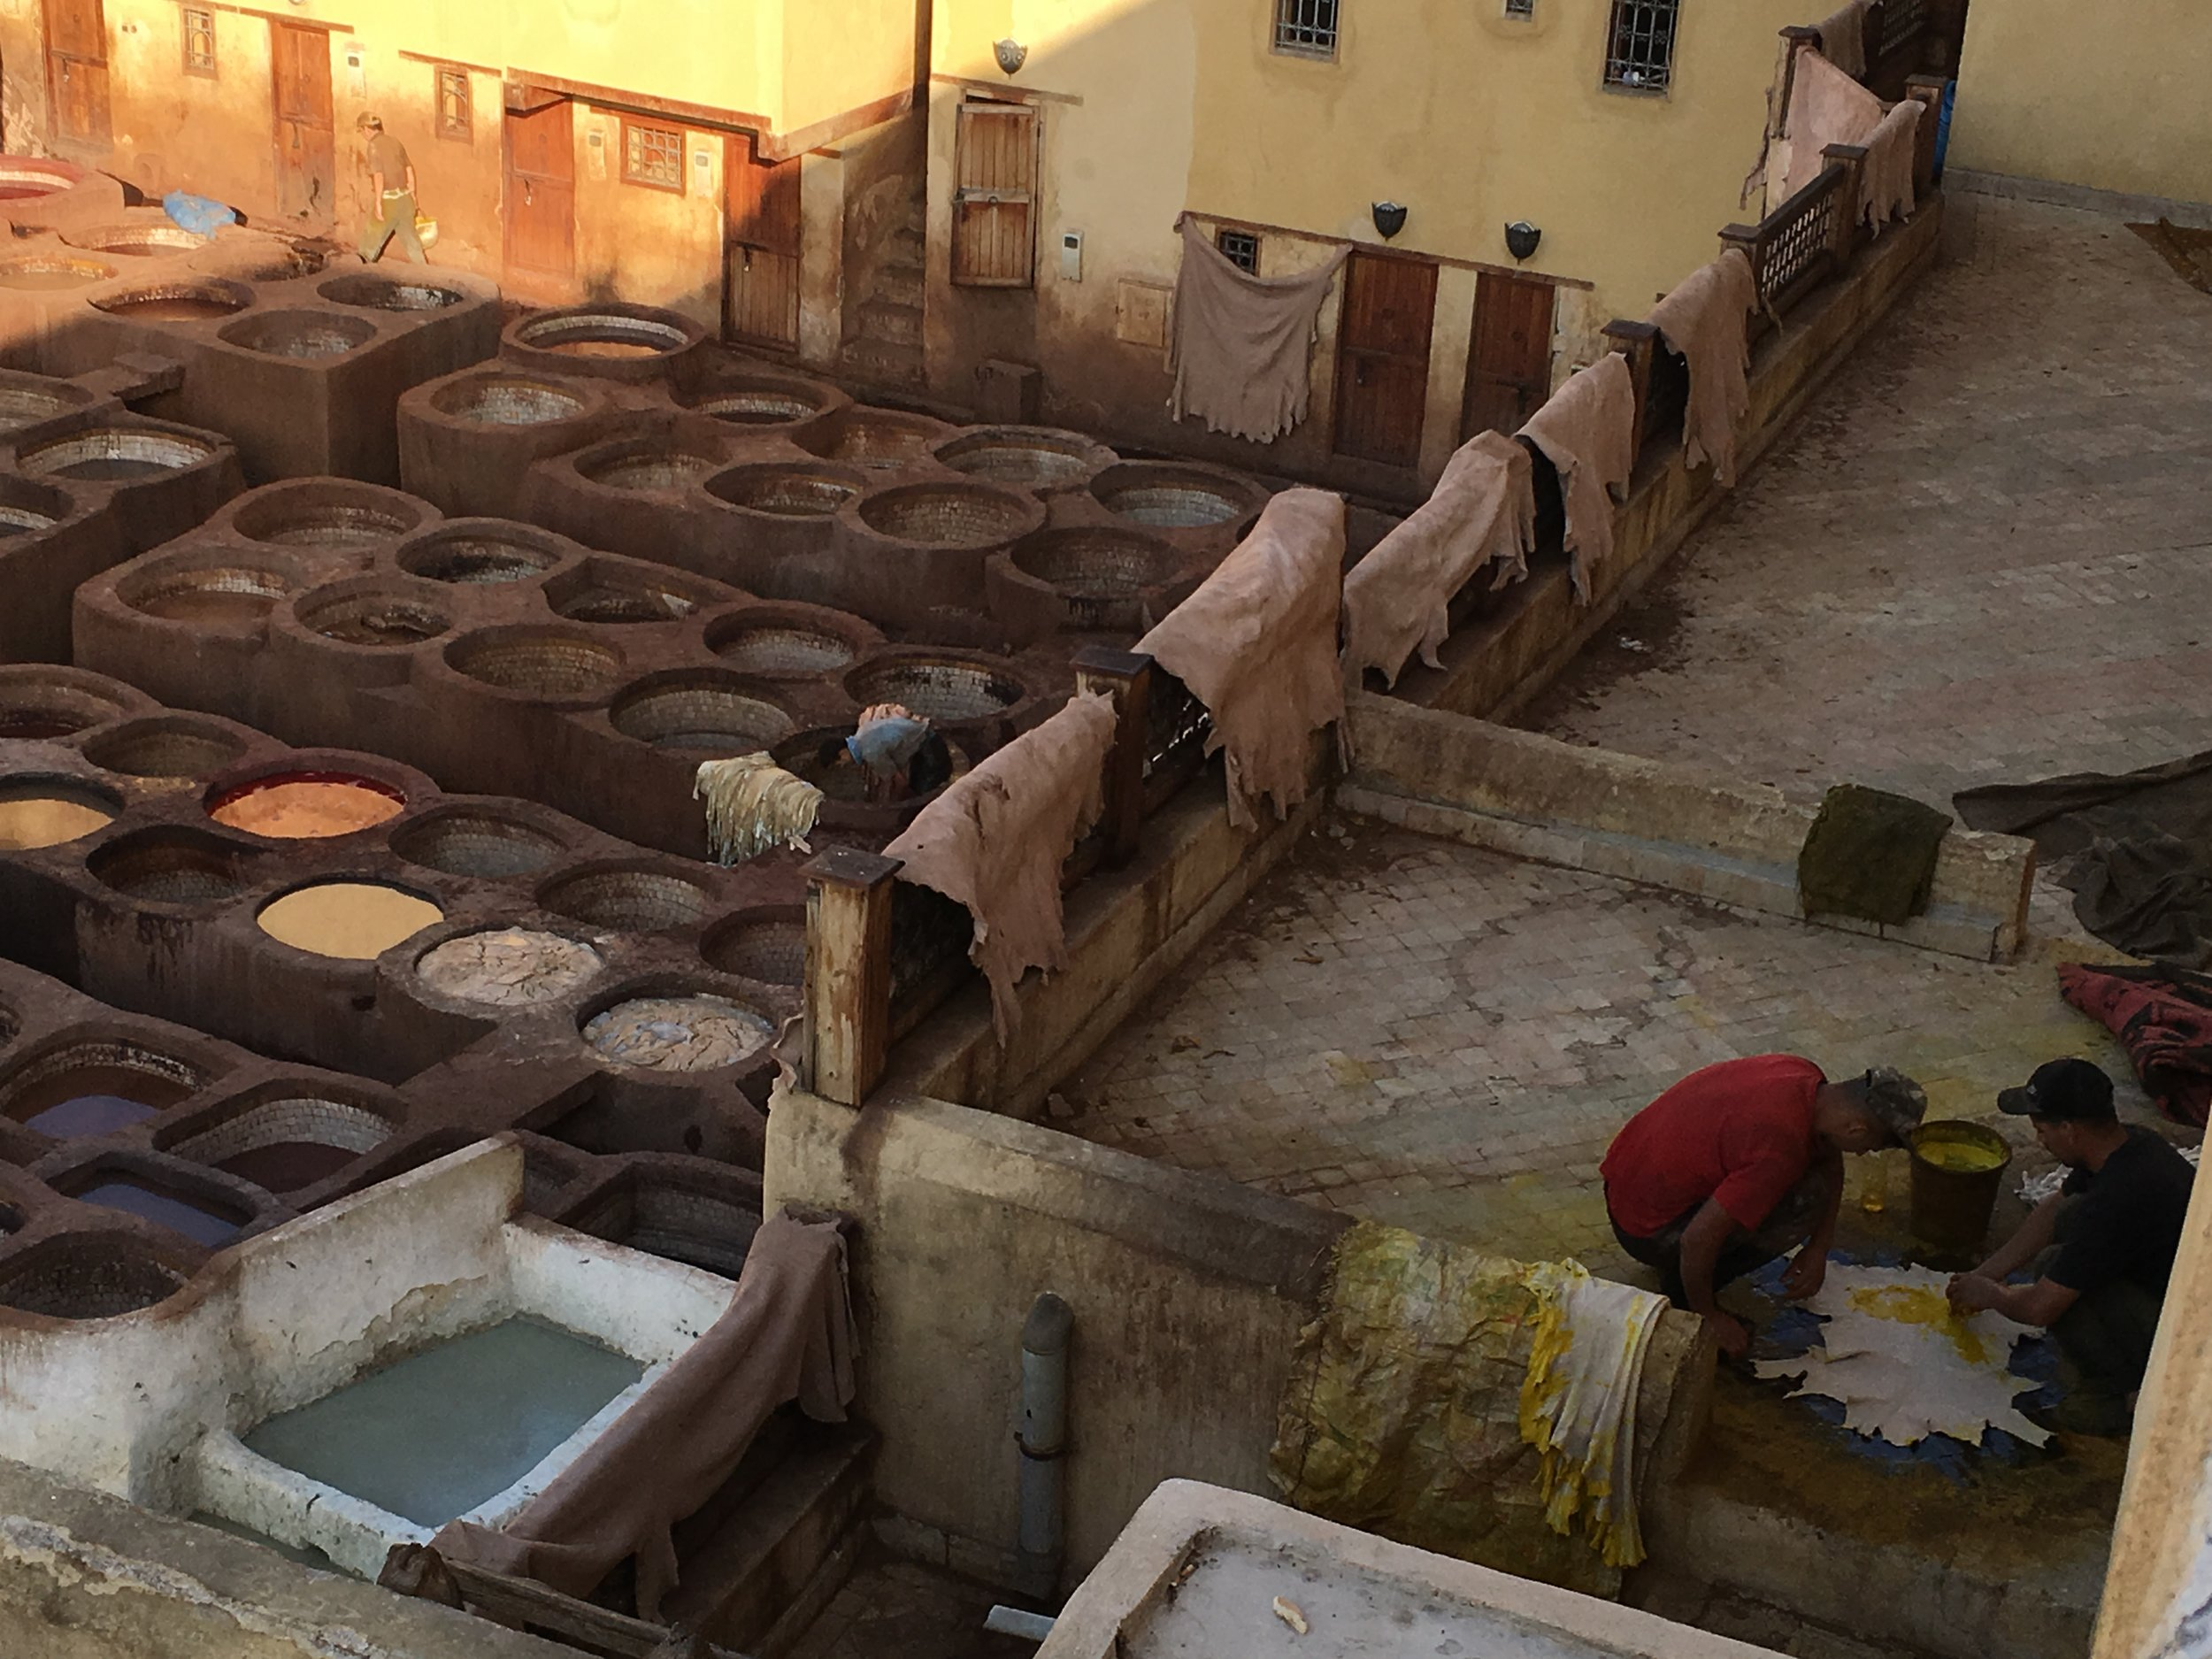 The Chaouwara tanneries use natural dyes. Yellow color comes from Saffron, which is the most expensive and it applied to the hides by hand rather than soaking the hides in vats. Here two men dye goatskins with saffron dye.